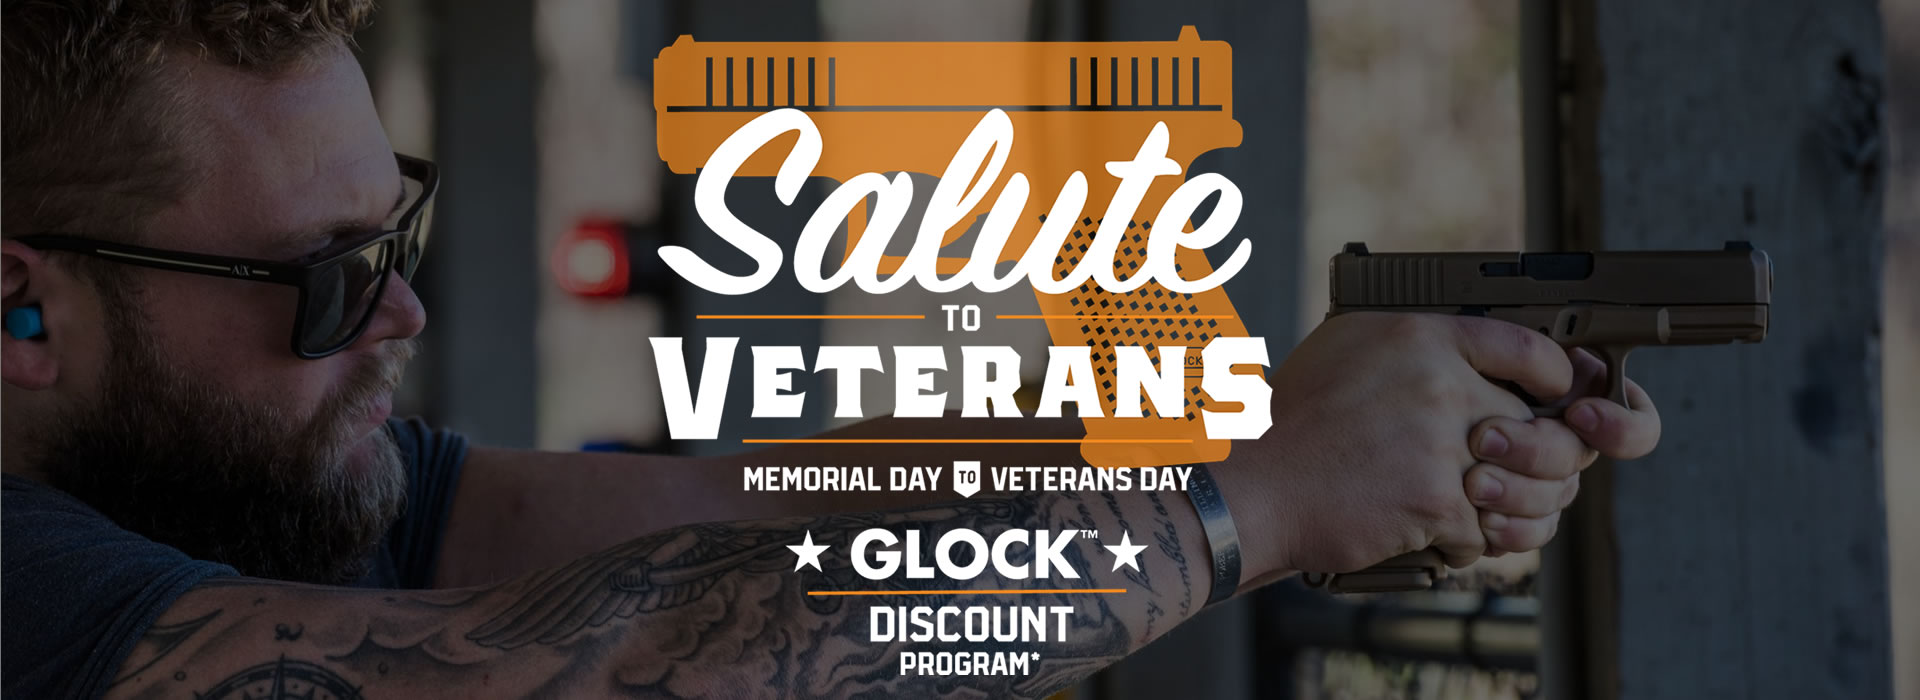 Glock Salute to Veterans Program